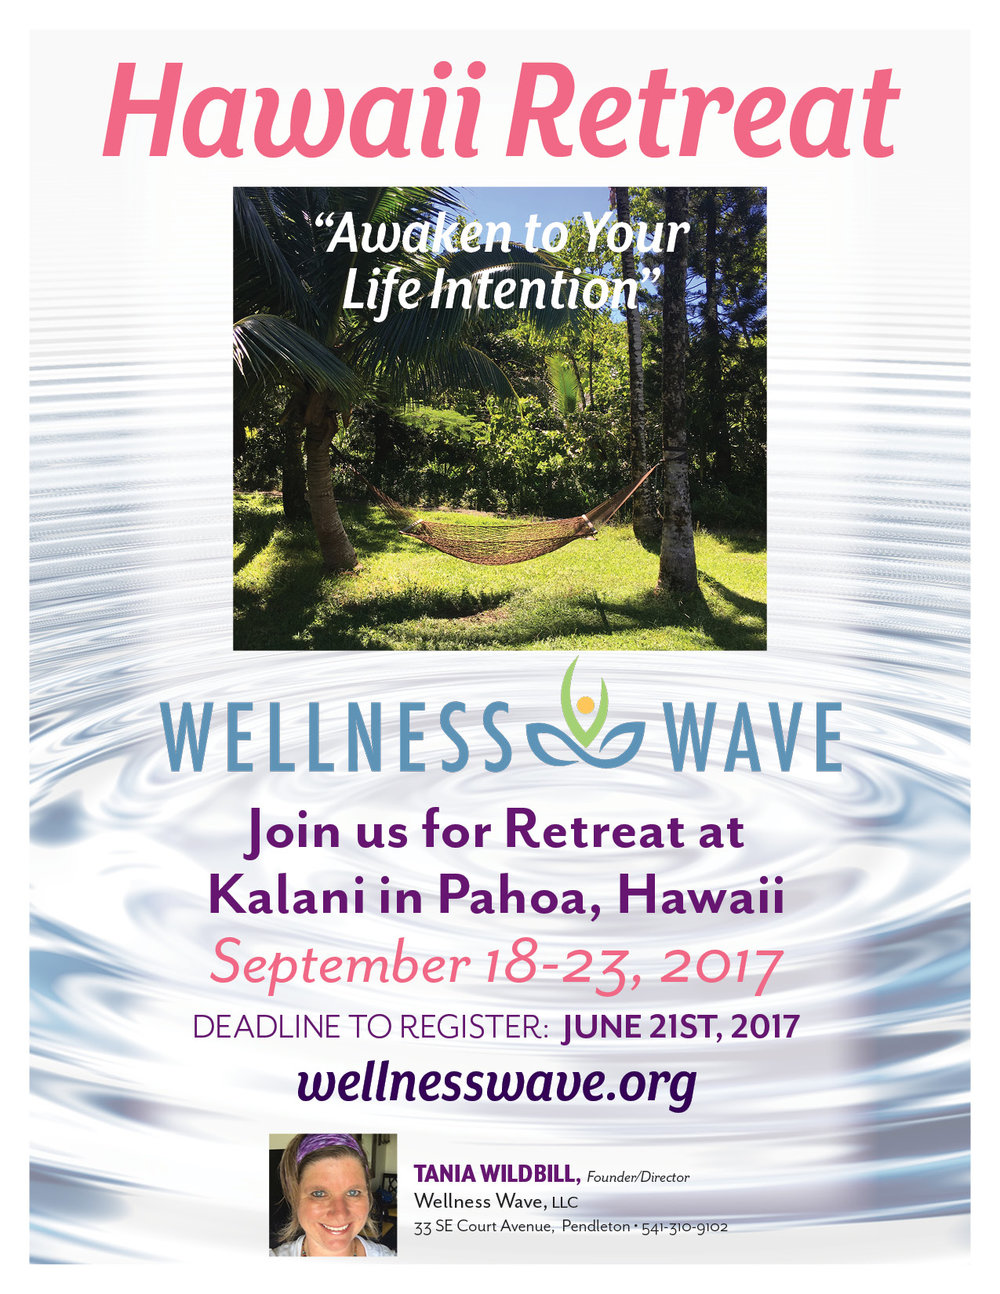 CLICK HERE TO REGISTER FOR   SEPTEMBER 18-23rd, 2017   WELLNESS WAVE RETREAT AT KALANI in HAWAII!